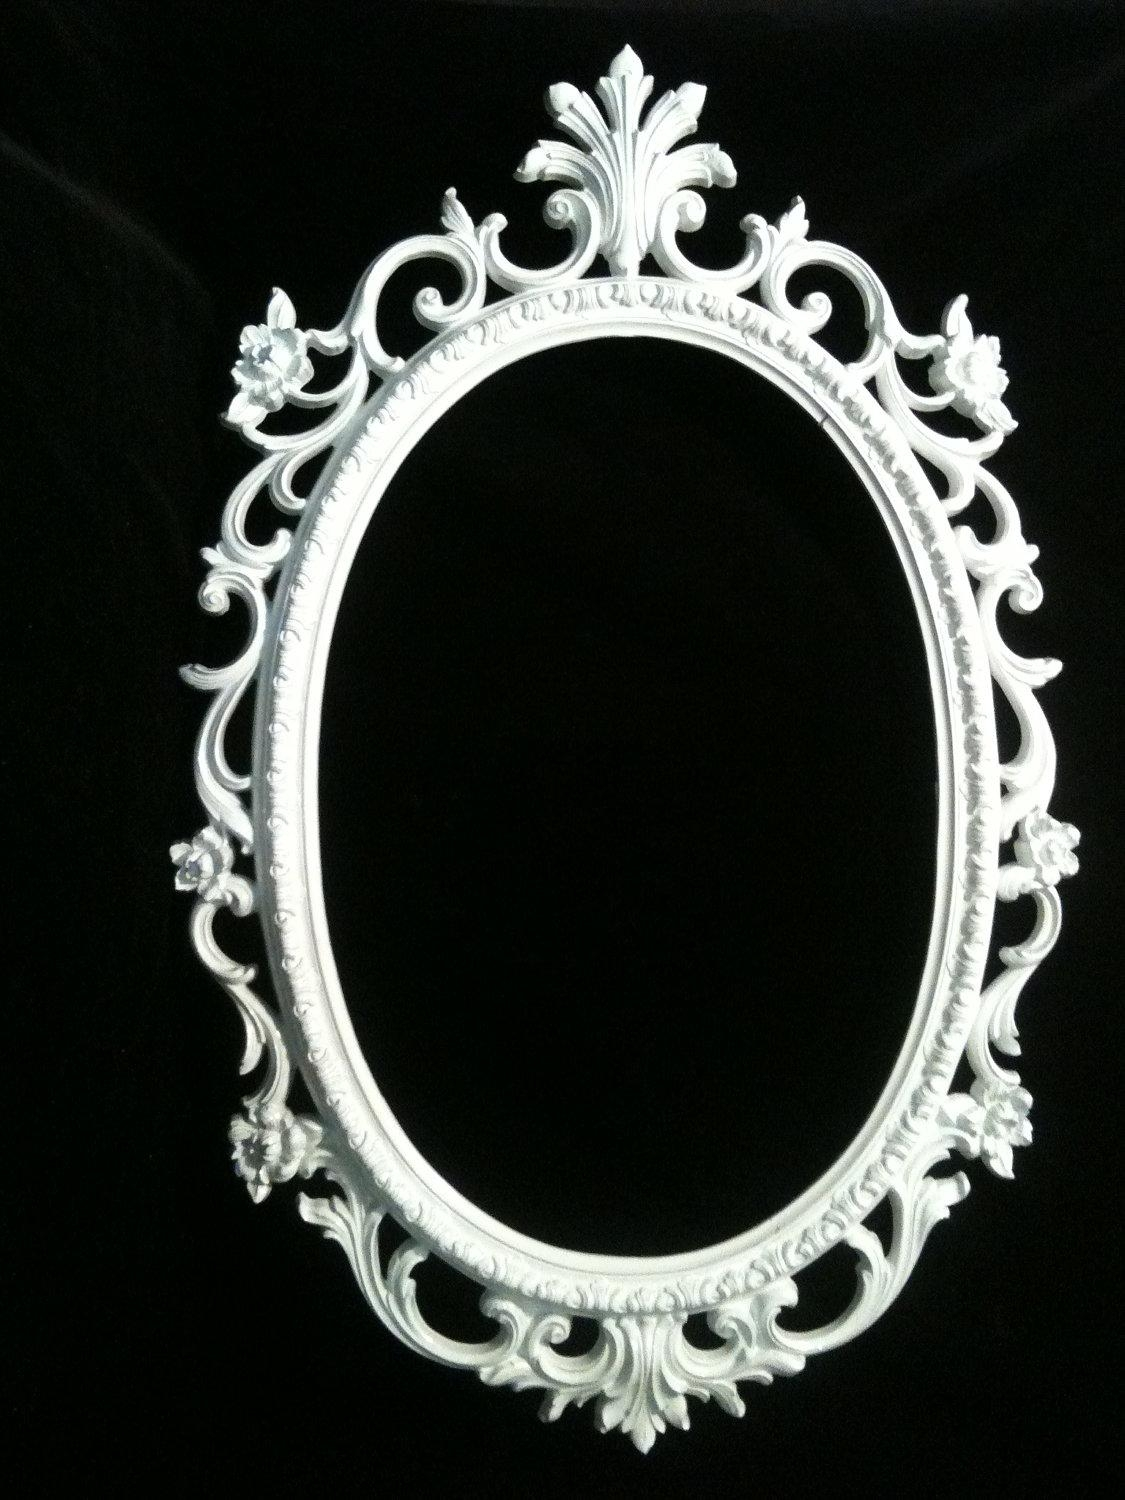 Oval Black Framed Mirror 119 Unique Decoration And Ornate Oval With Ornate Oval Mirrors (Image 14 of 20)